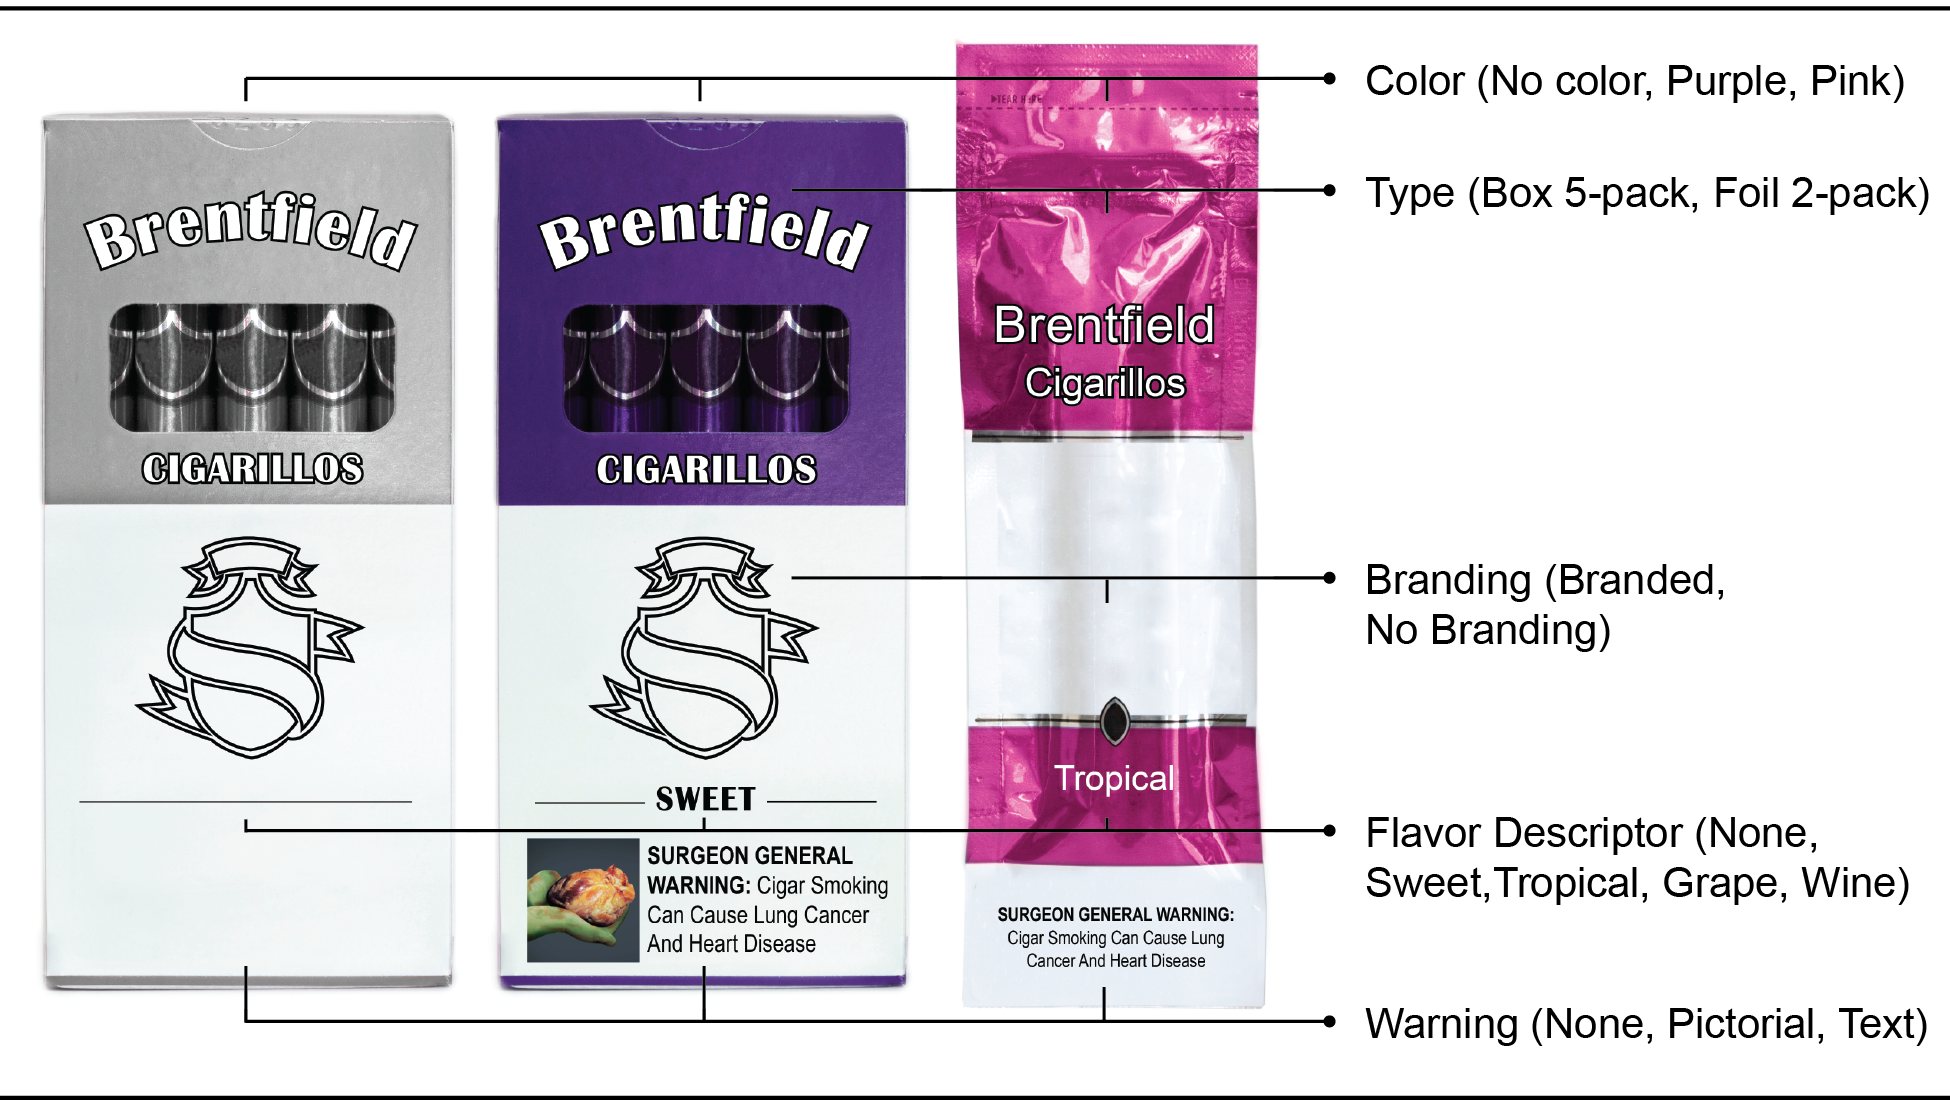 The cigarillo pack variations used in the study included variations by color, flavor description, brandng and warning type.